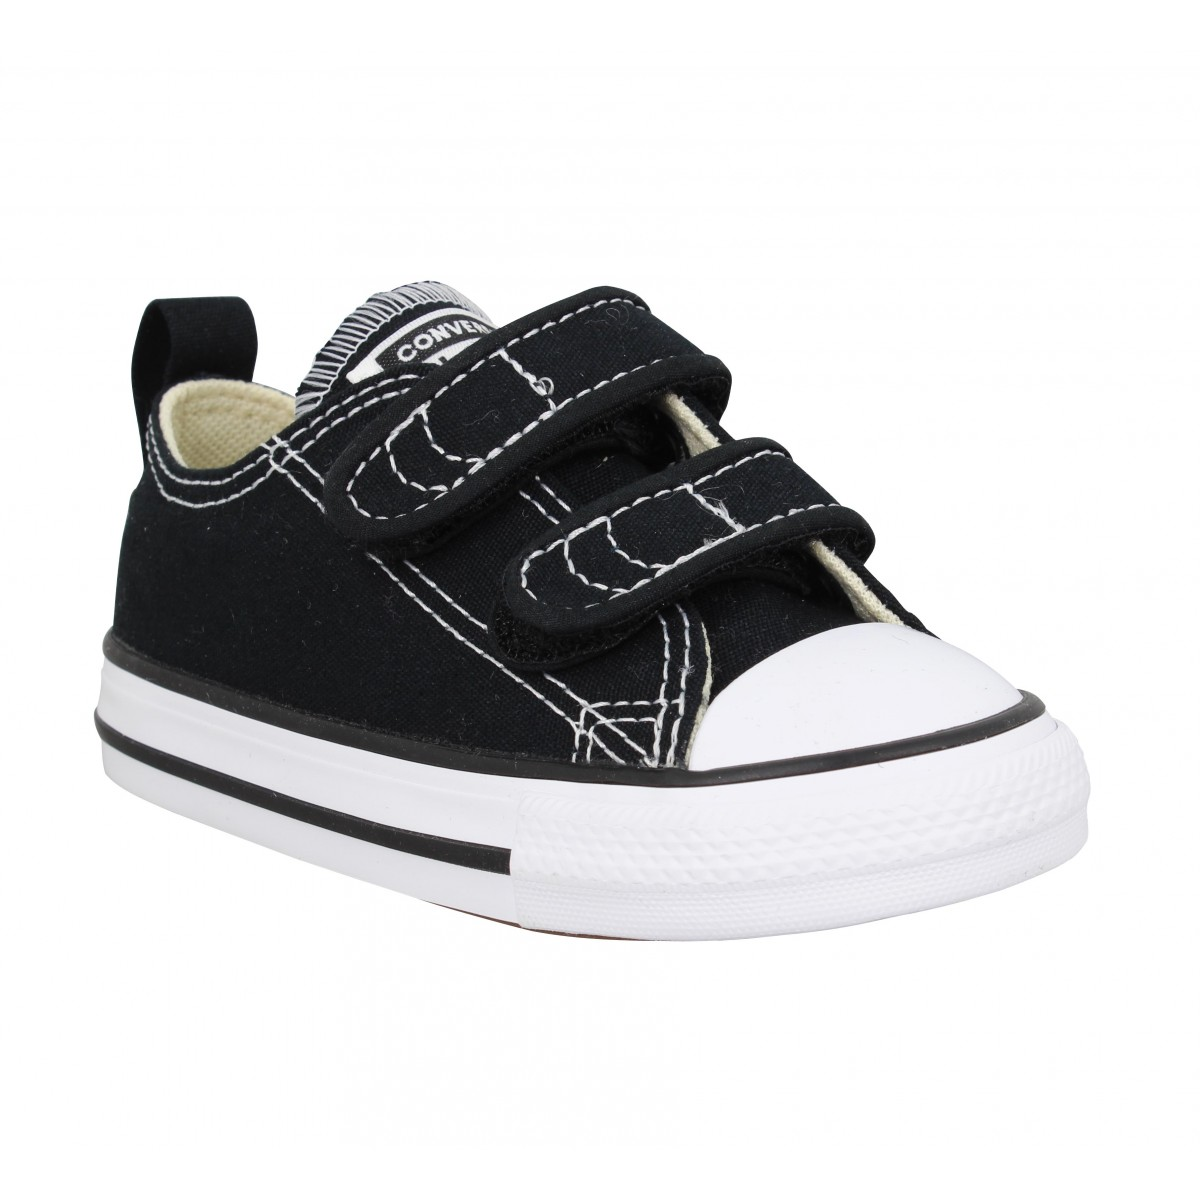 Baskets CONVERSE Chuck Taylor All Star 2V toile Enfant Black